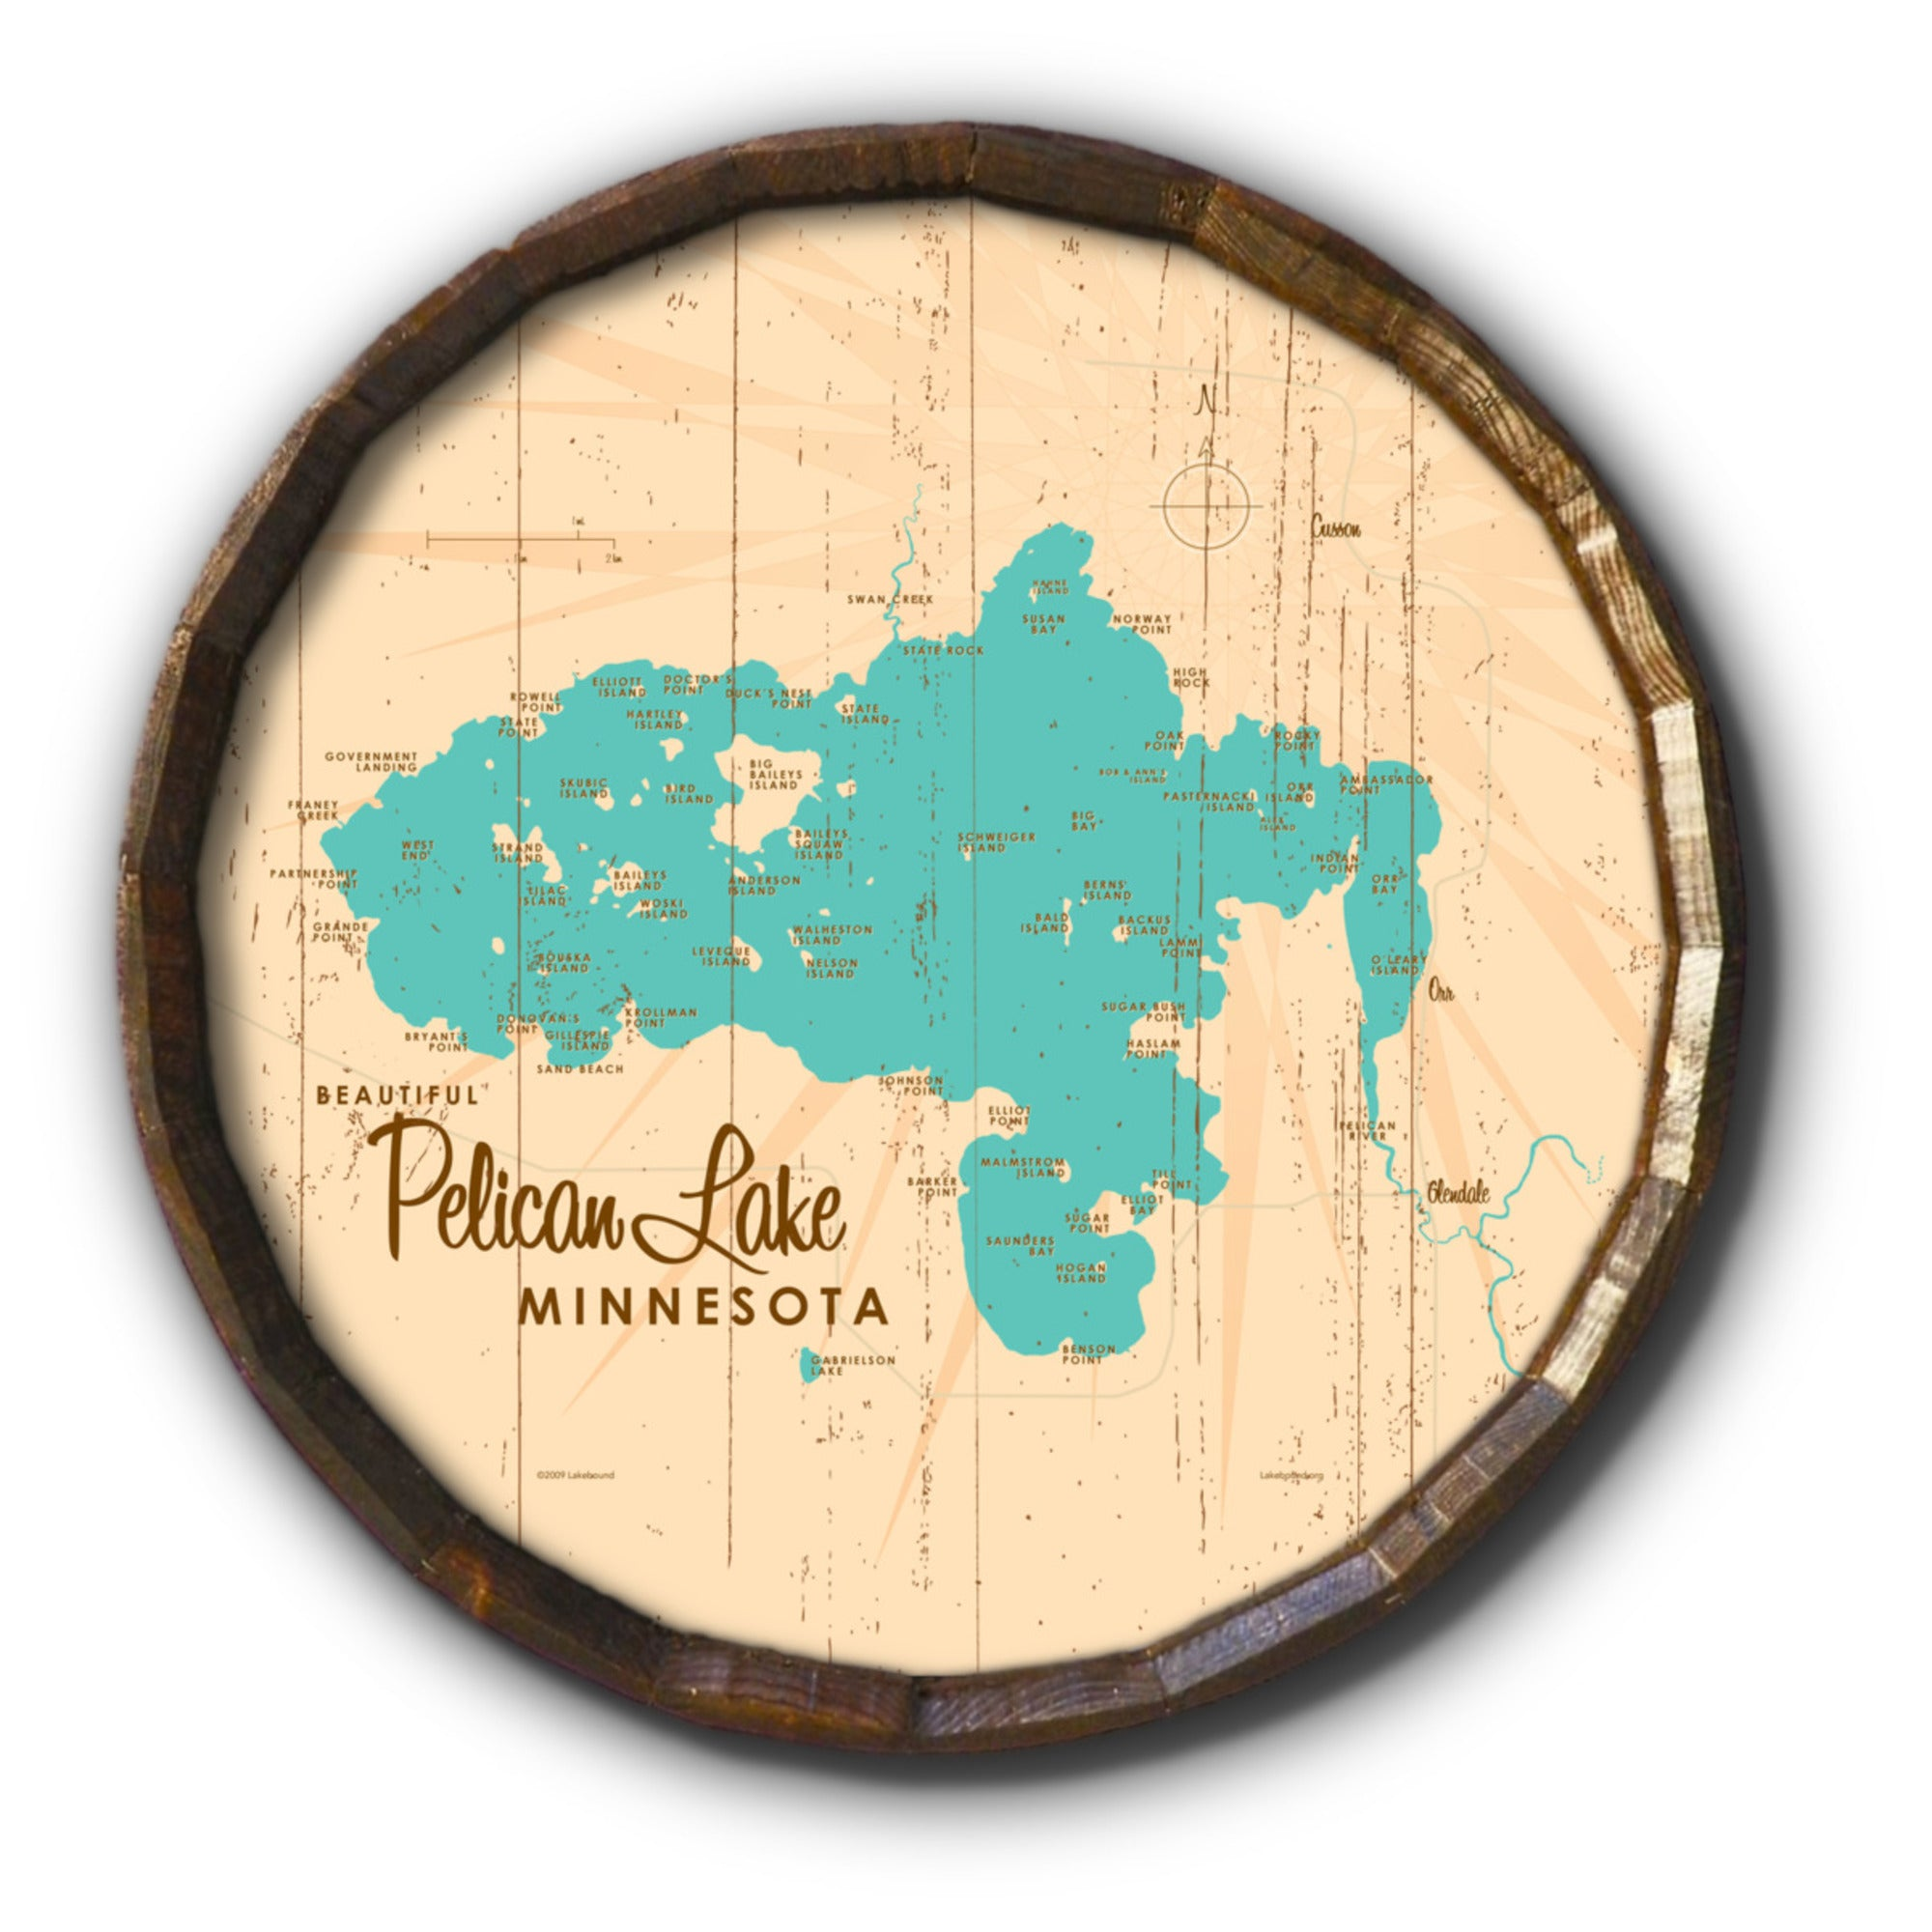 Pelican Lake St. Louis County Minnesota, Rustic Barrel End Map Art